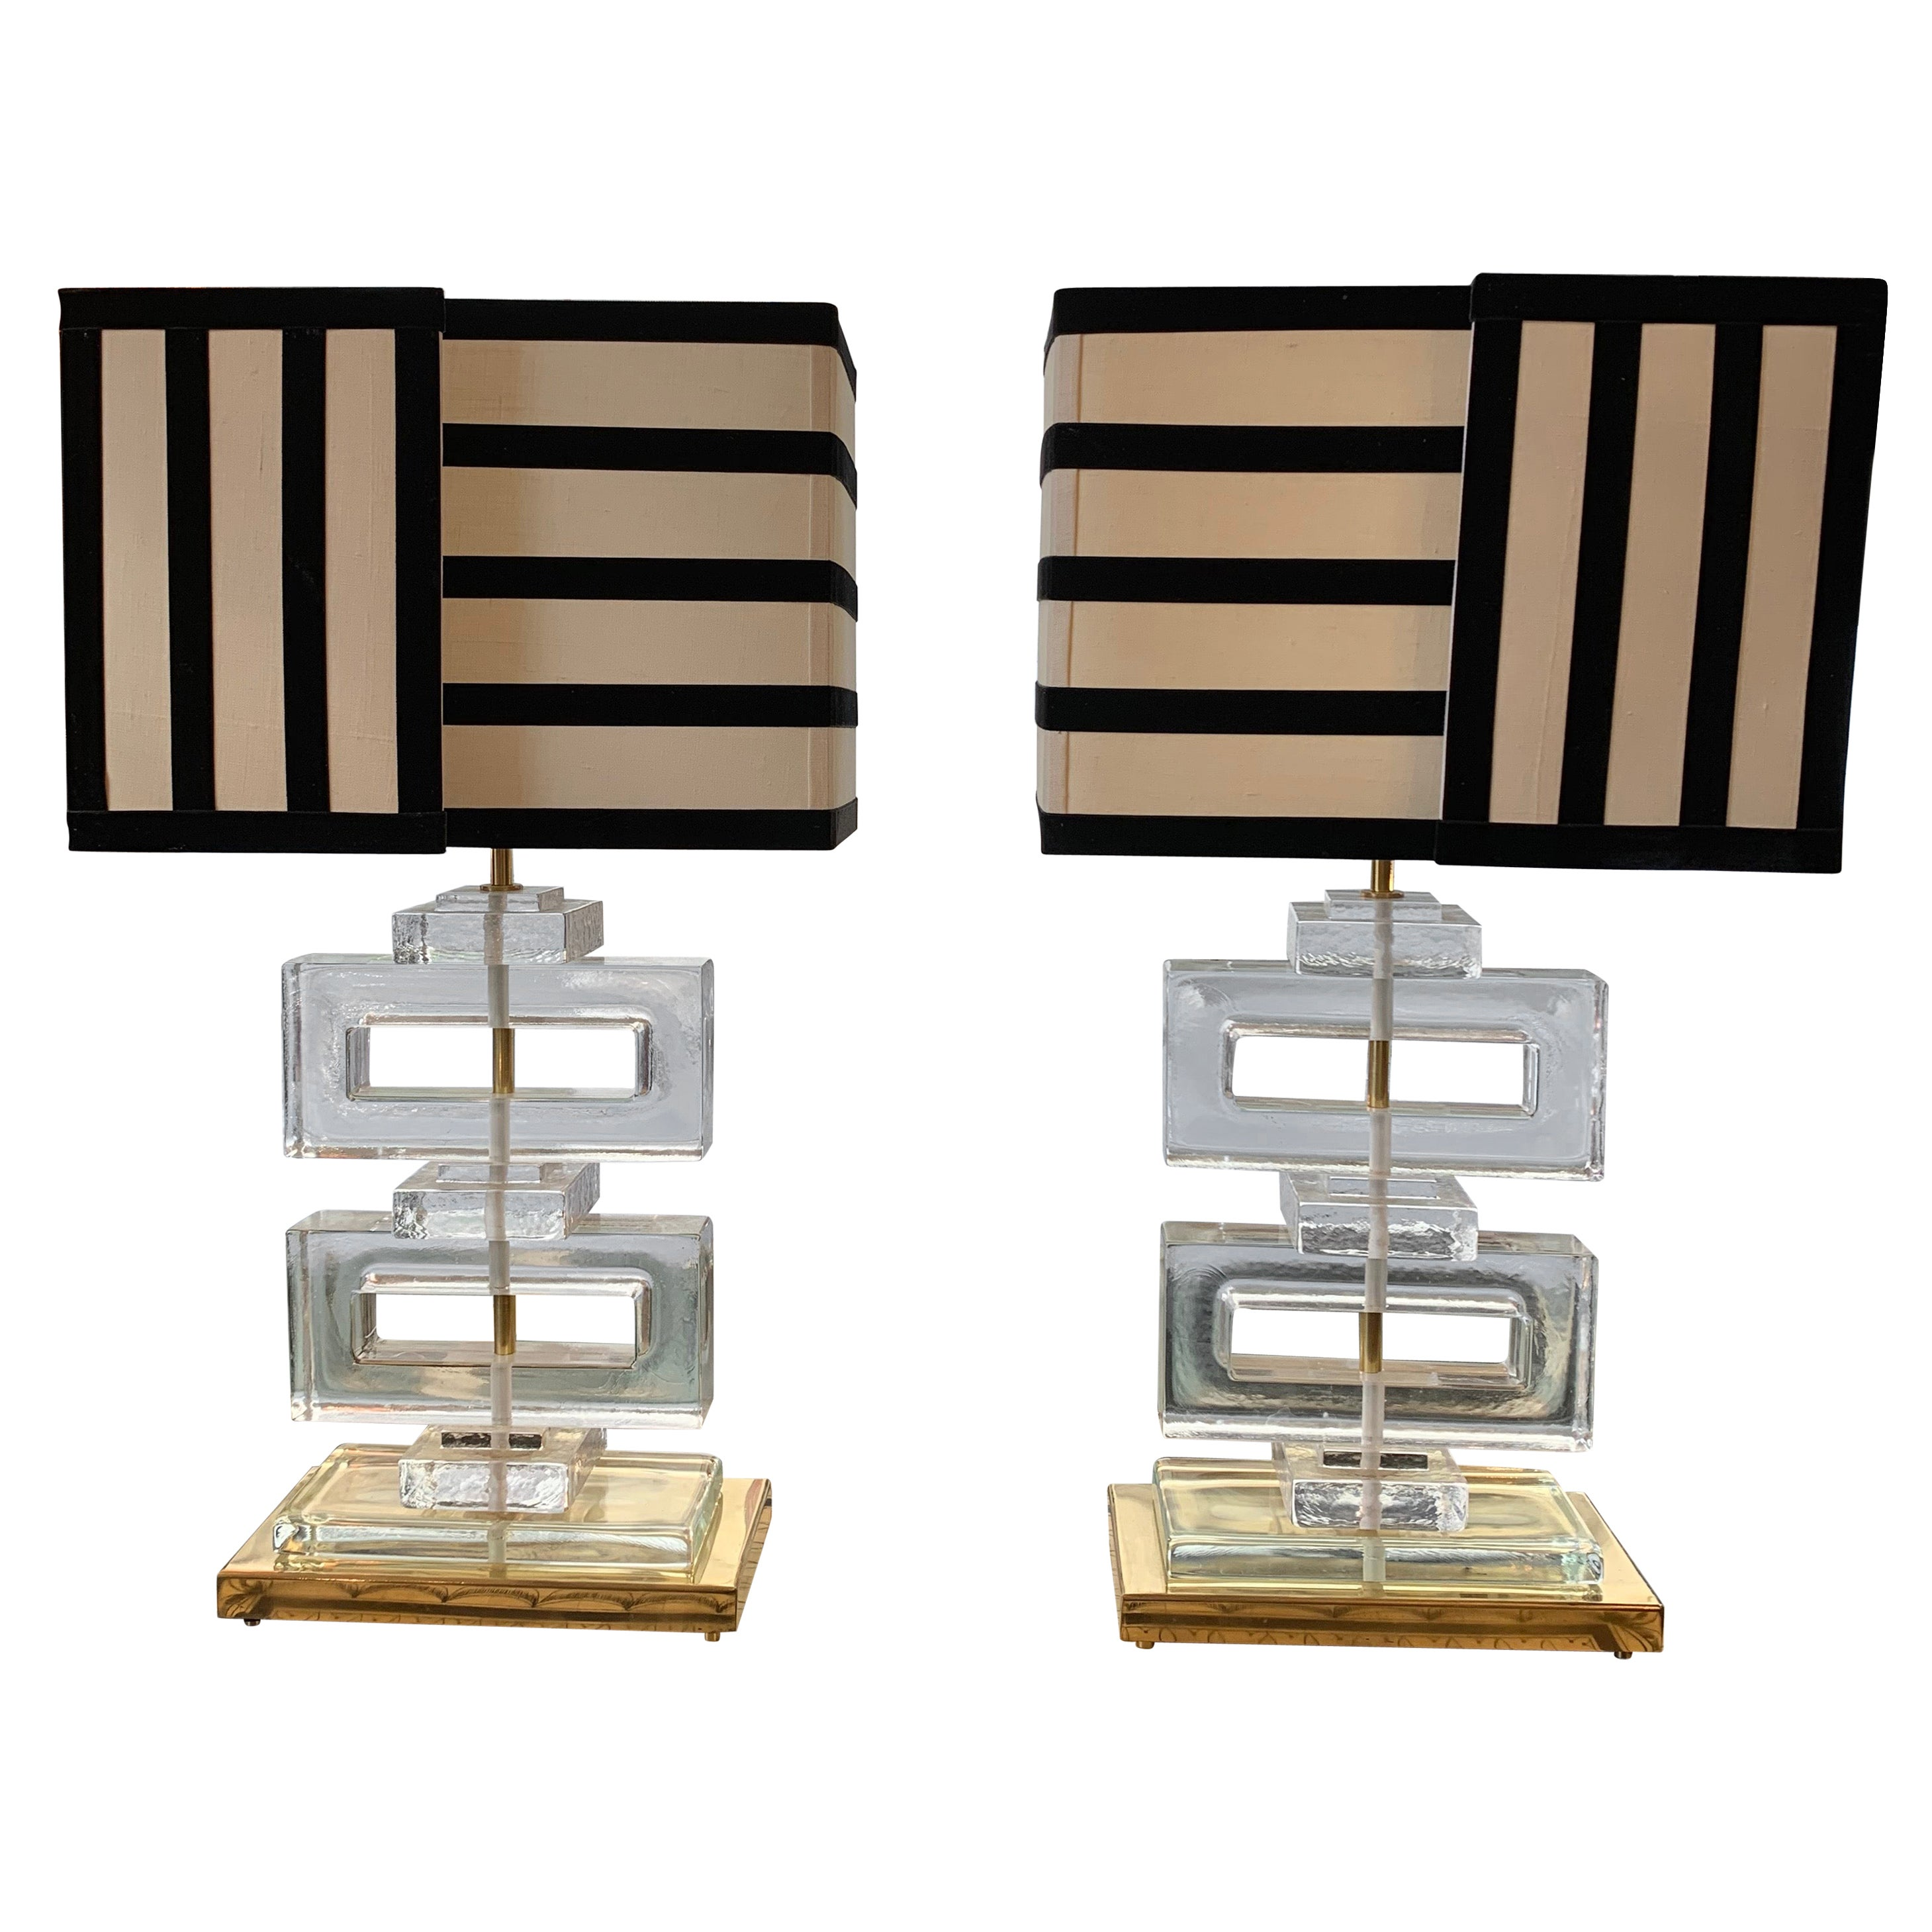 Clear Glass Murano Blocks Lamps with Striped Black and White Lampshades, 1970s